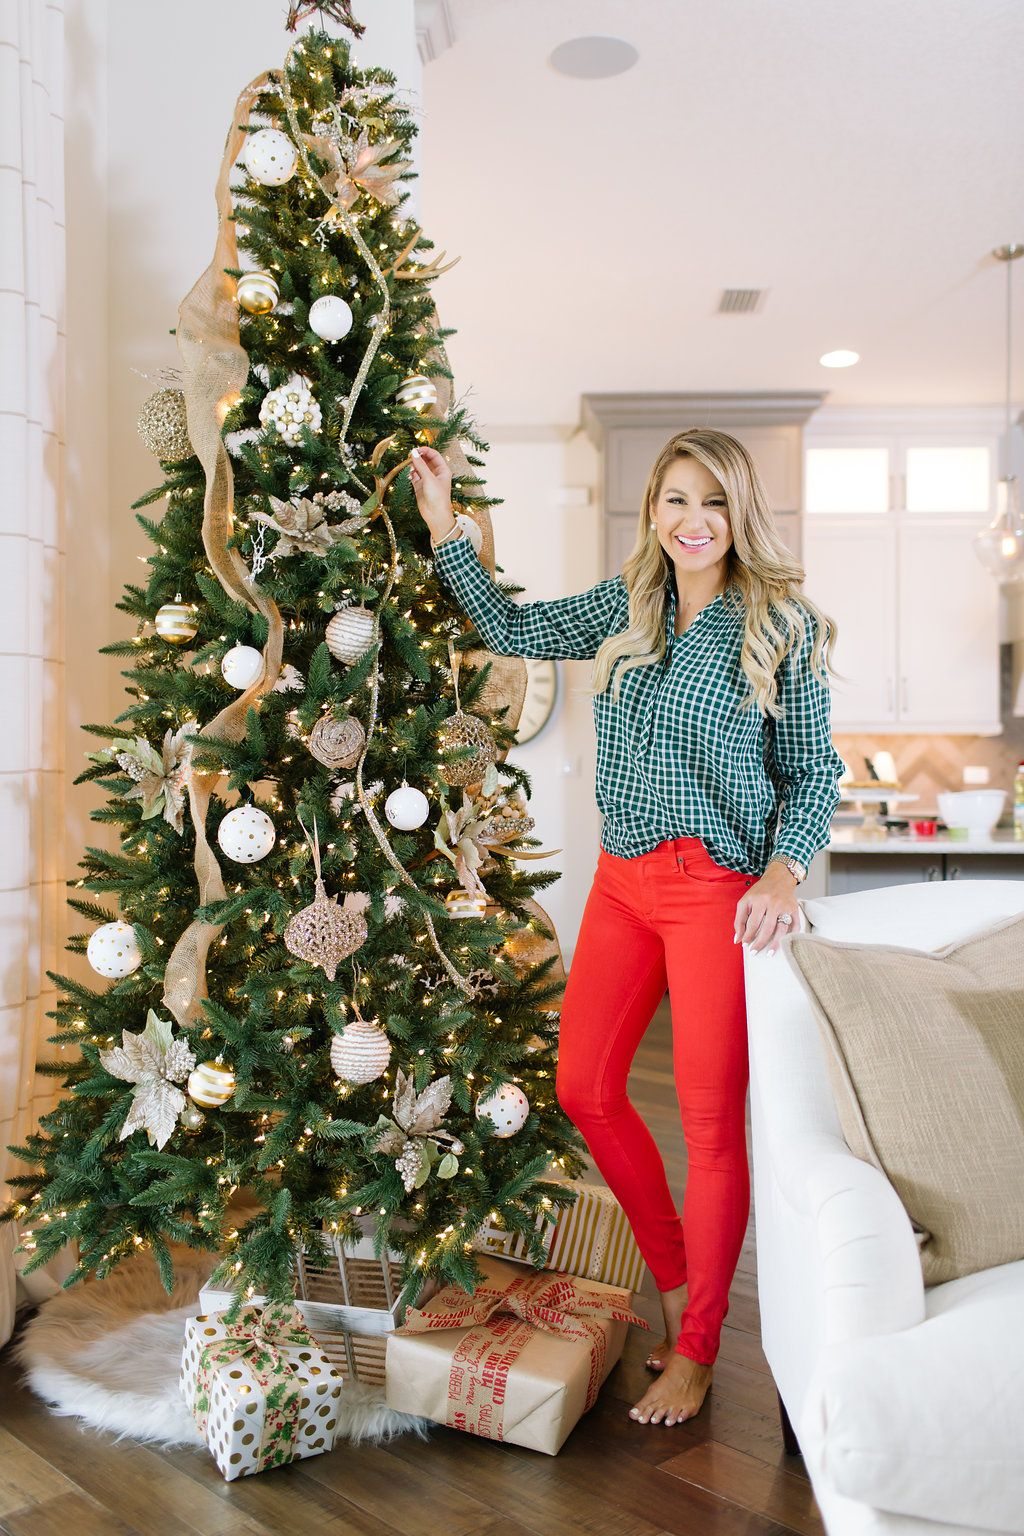 066f18e8eb00 Christmas at Home. What to wear Christmas day at home, at your parents  house, or with your in-laws.